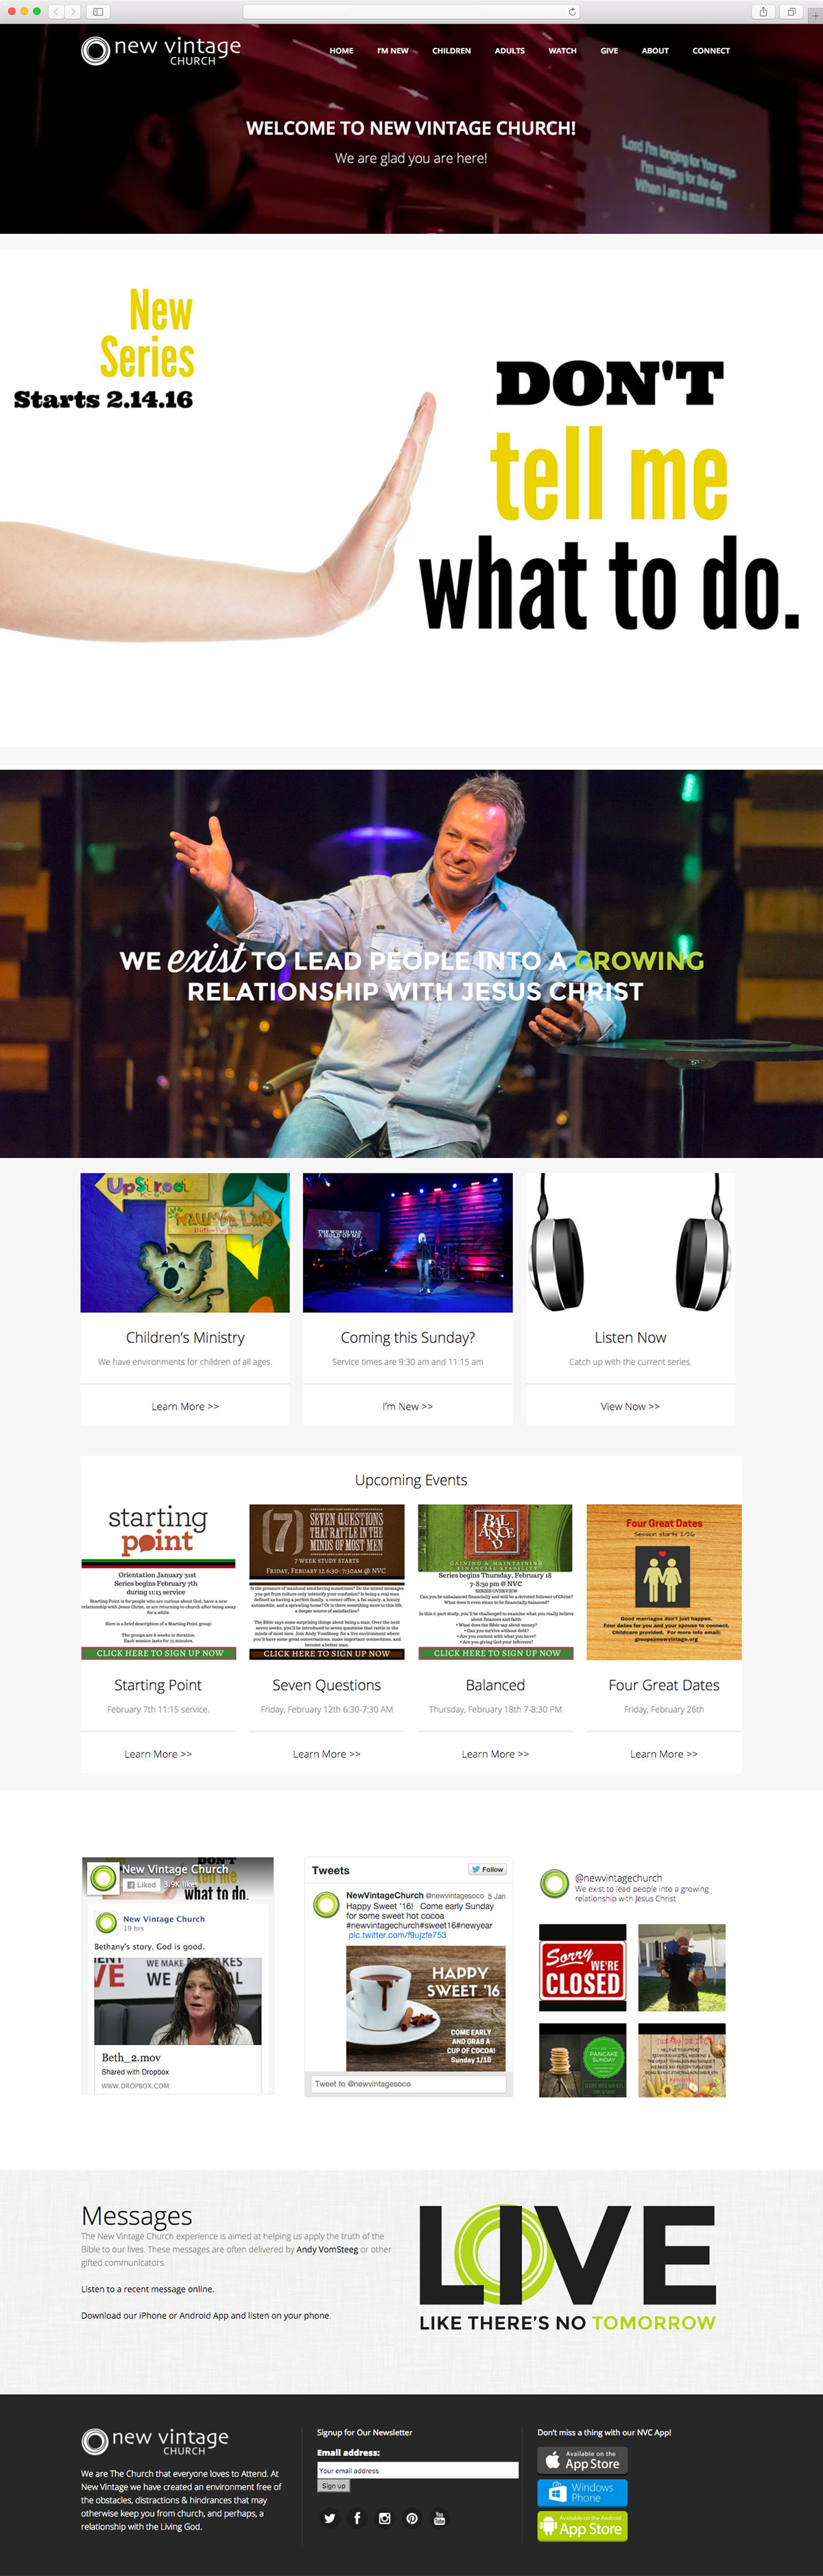 adept_website_mockup_newvintagechurch_homepage